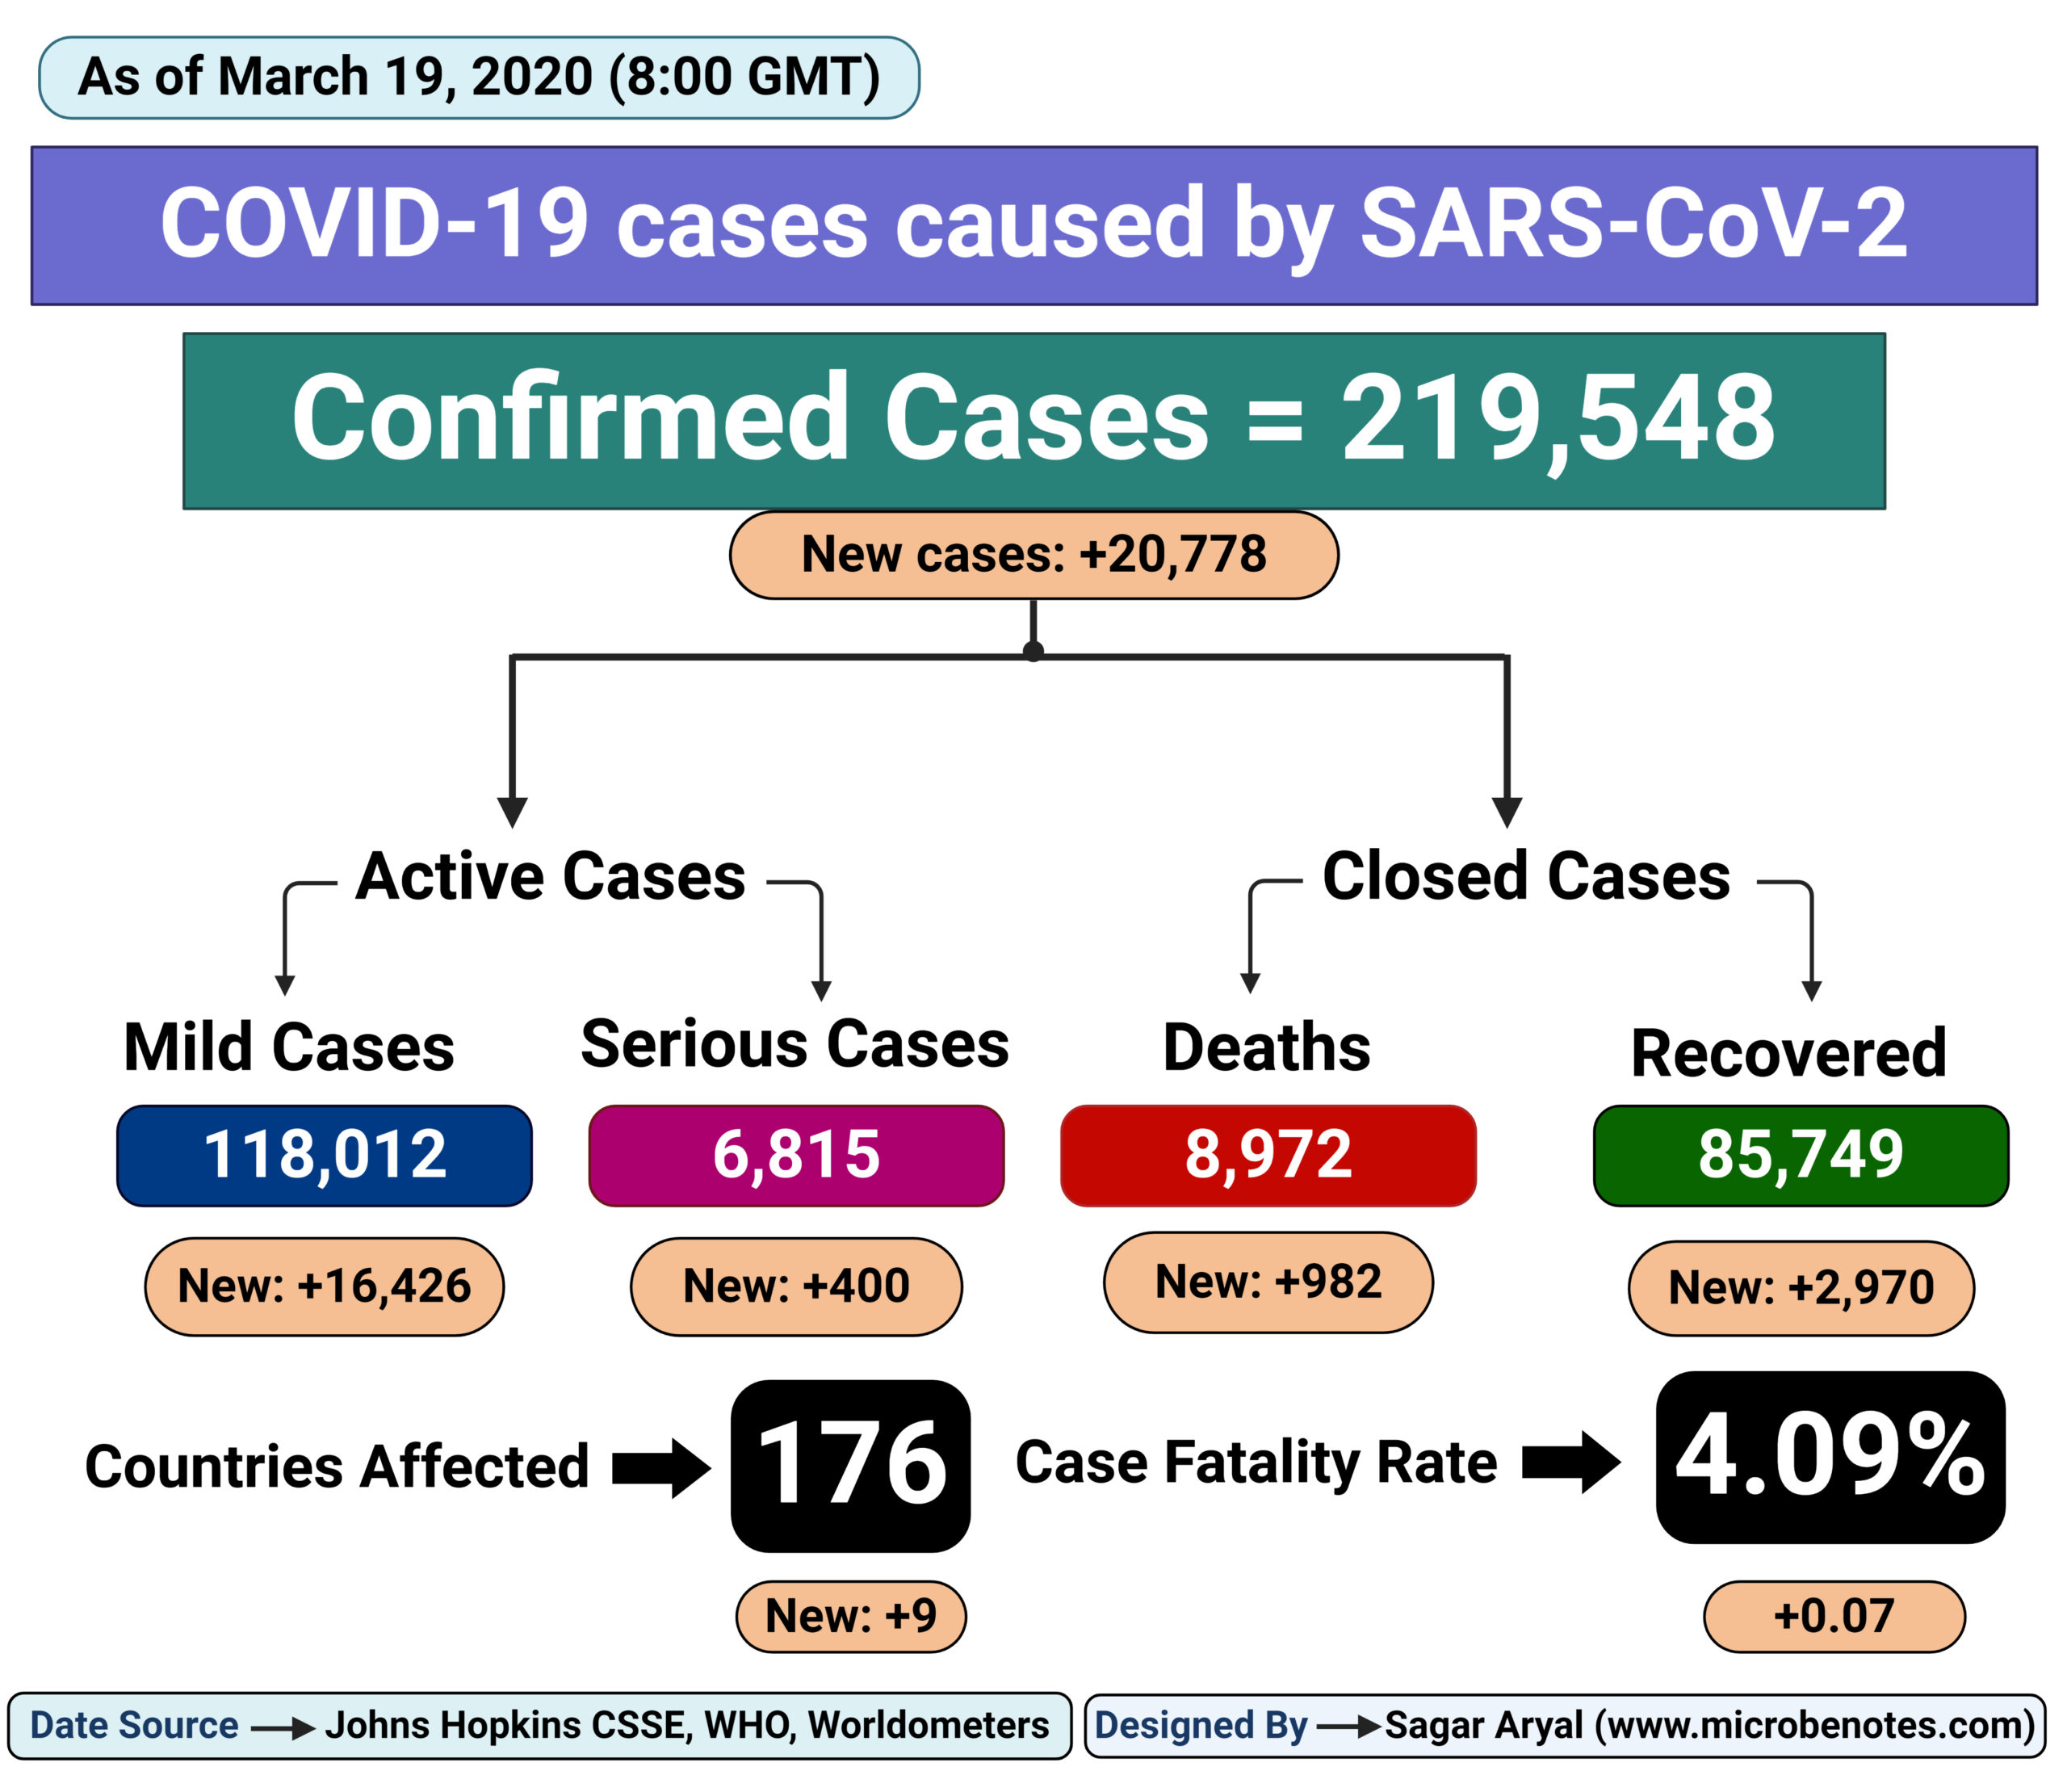 Epidemiology of COVID-19 caused by SARS-CoV-2 as of March 19, 2020